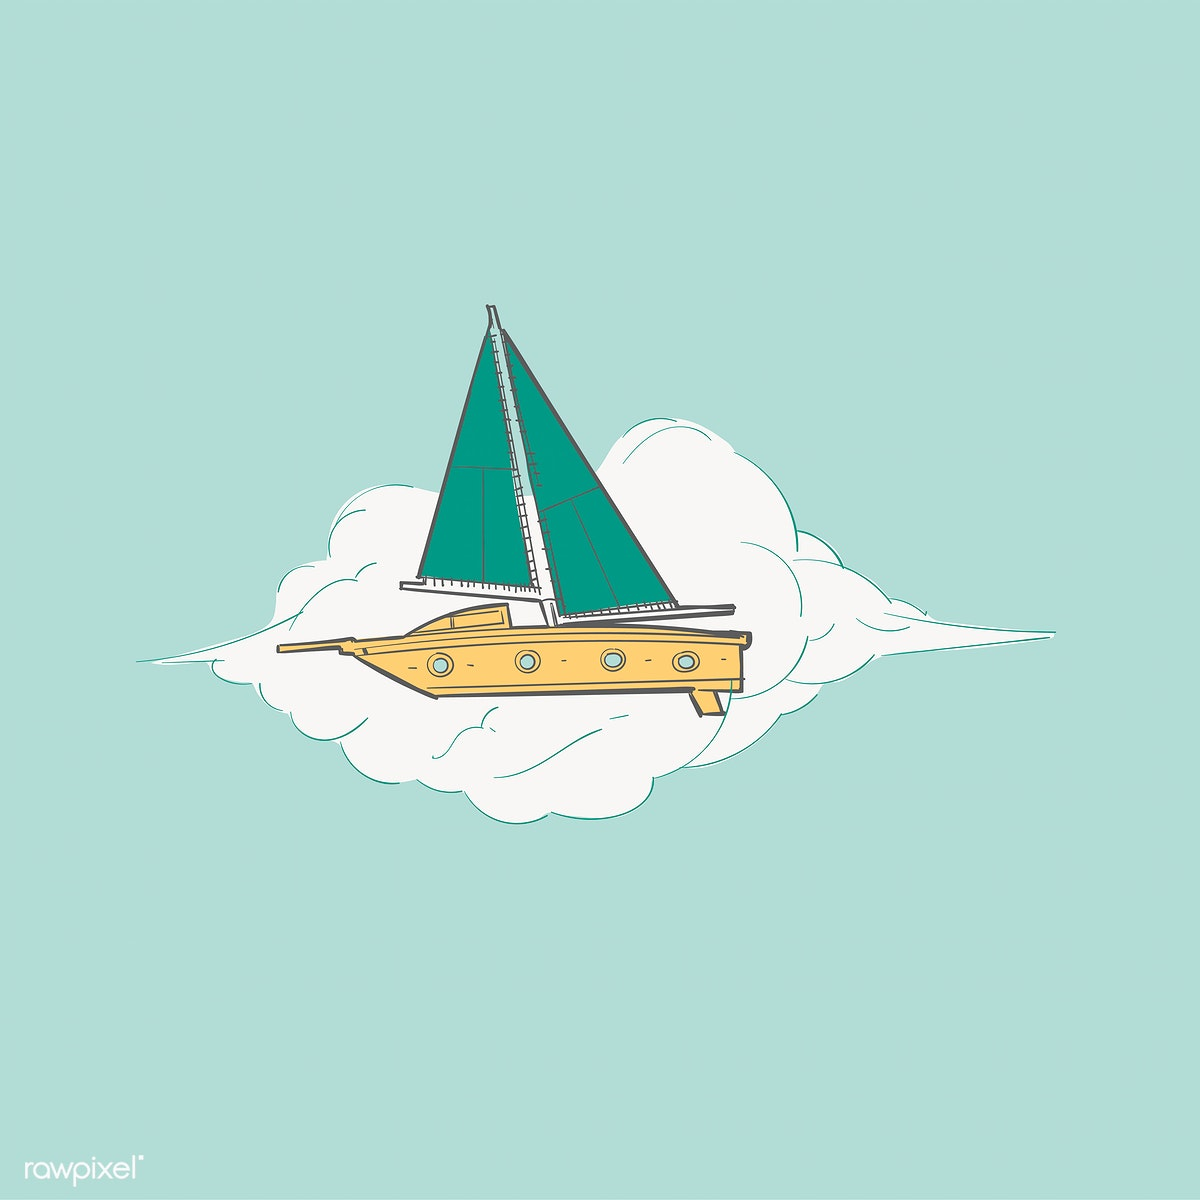 png transparent Boats drawing creative. Artwork boat free stock